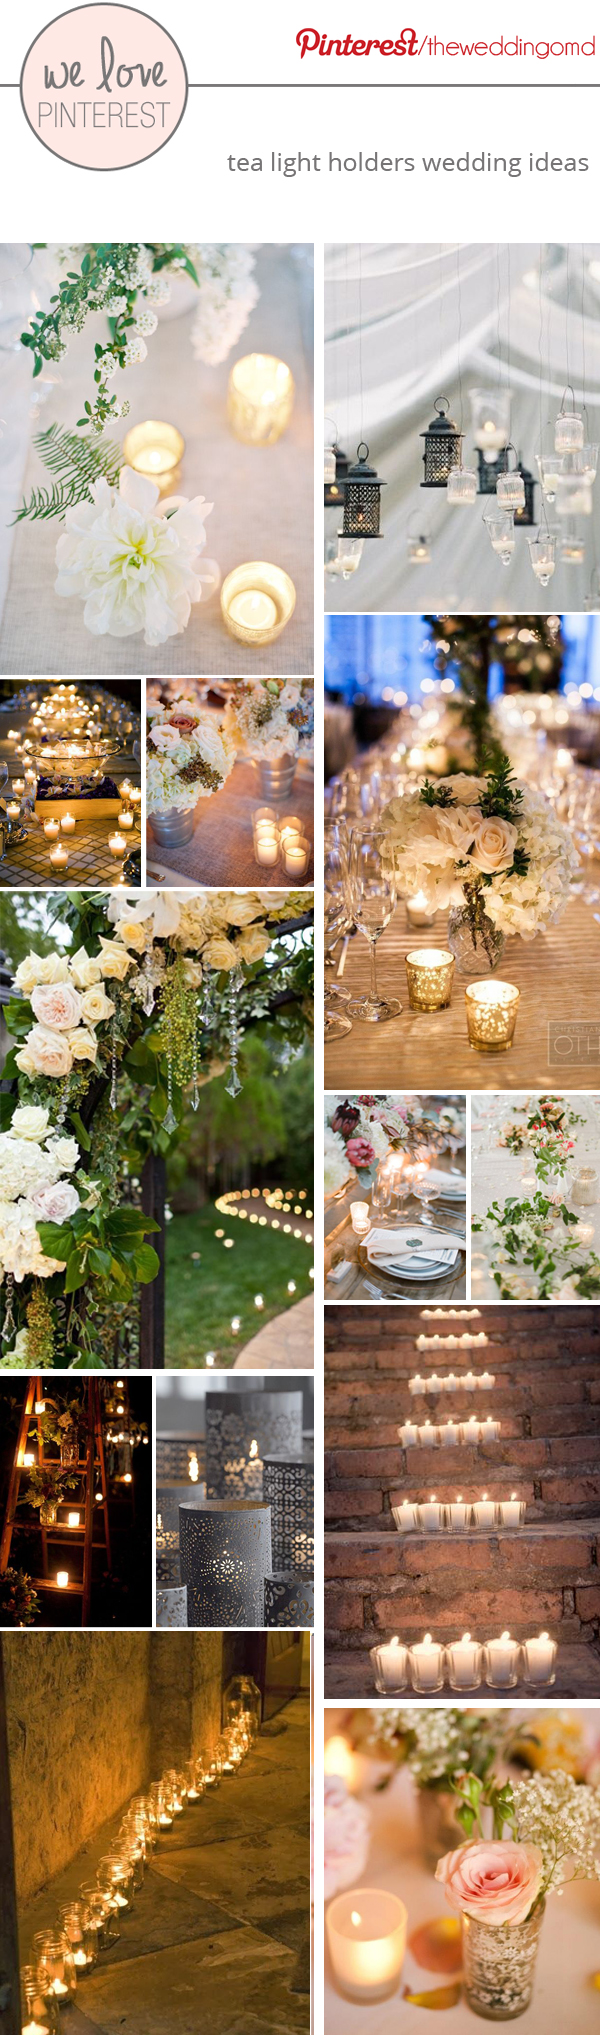 tea light holders wedding ideas